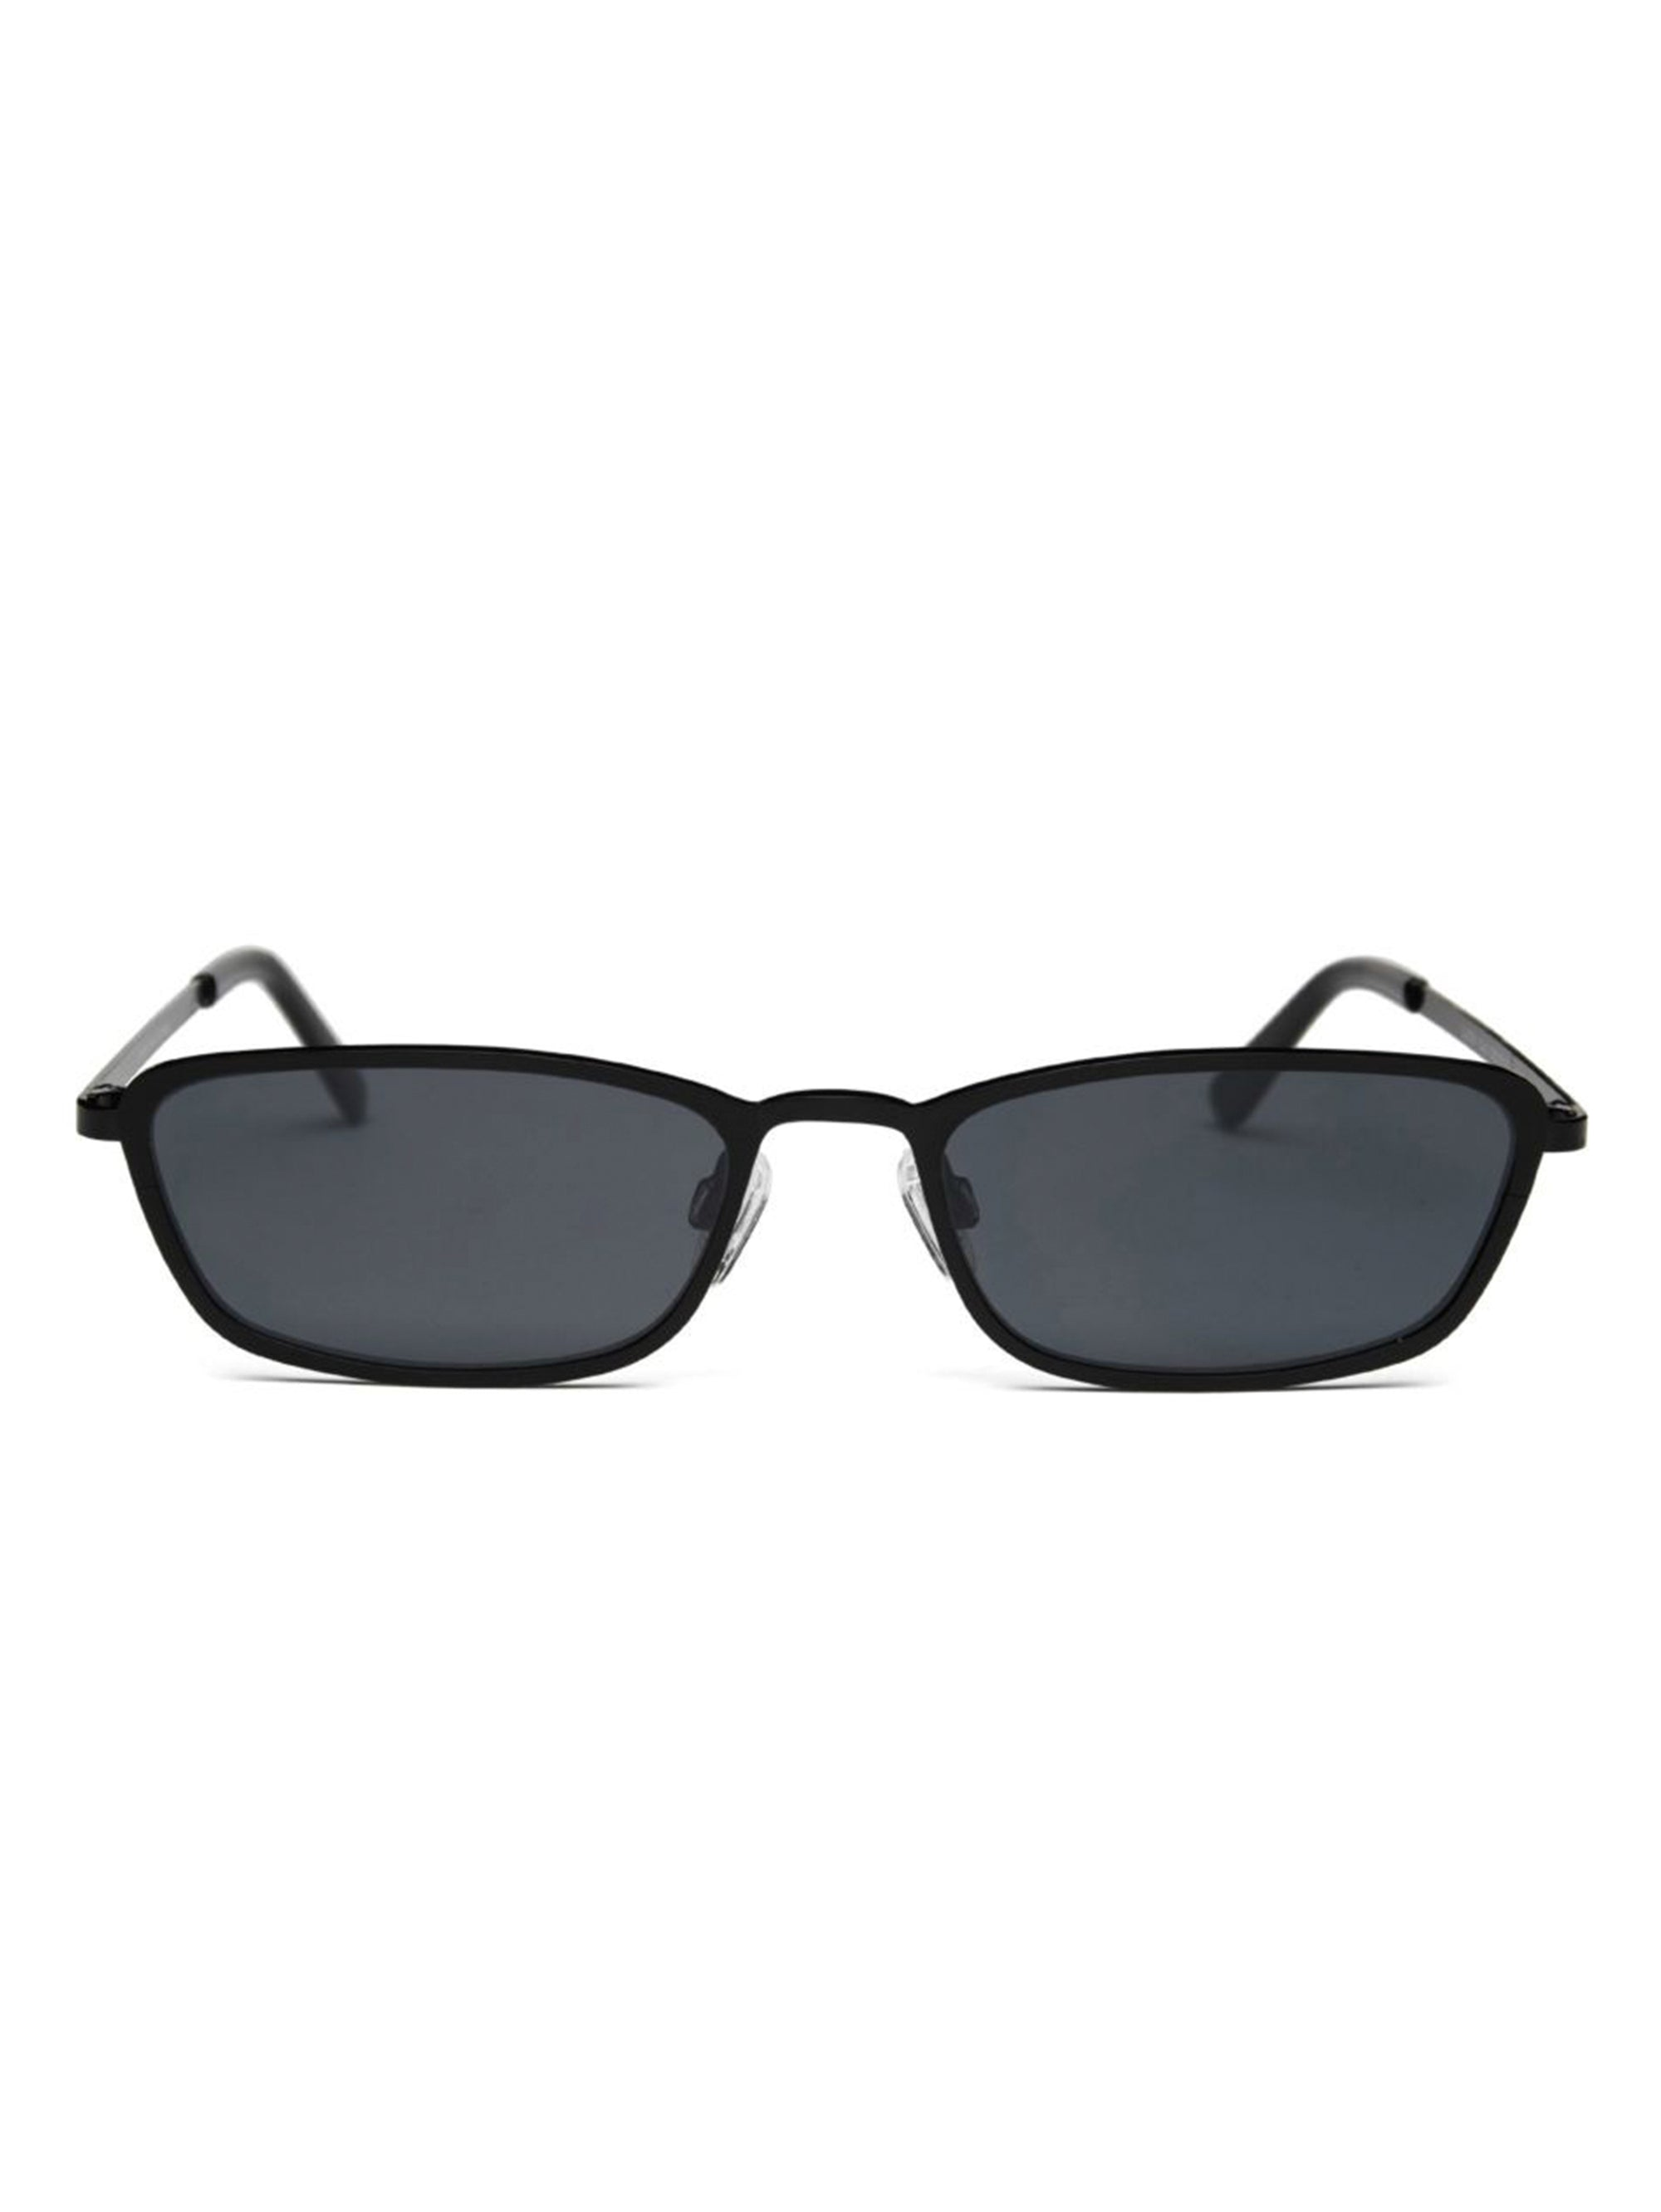 Lentes Carolina Lemke CL6706 01